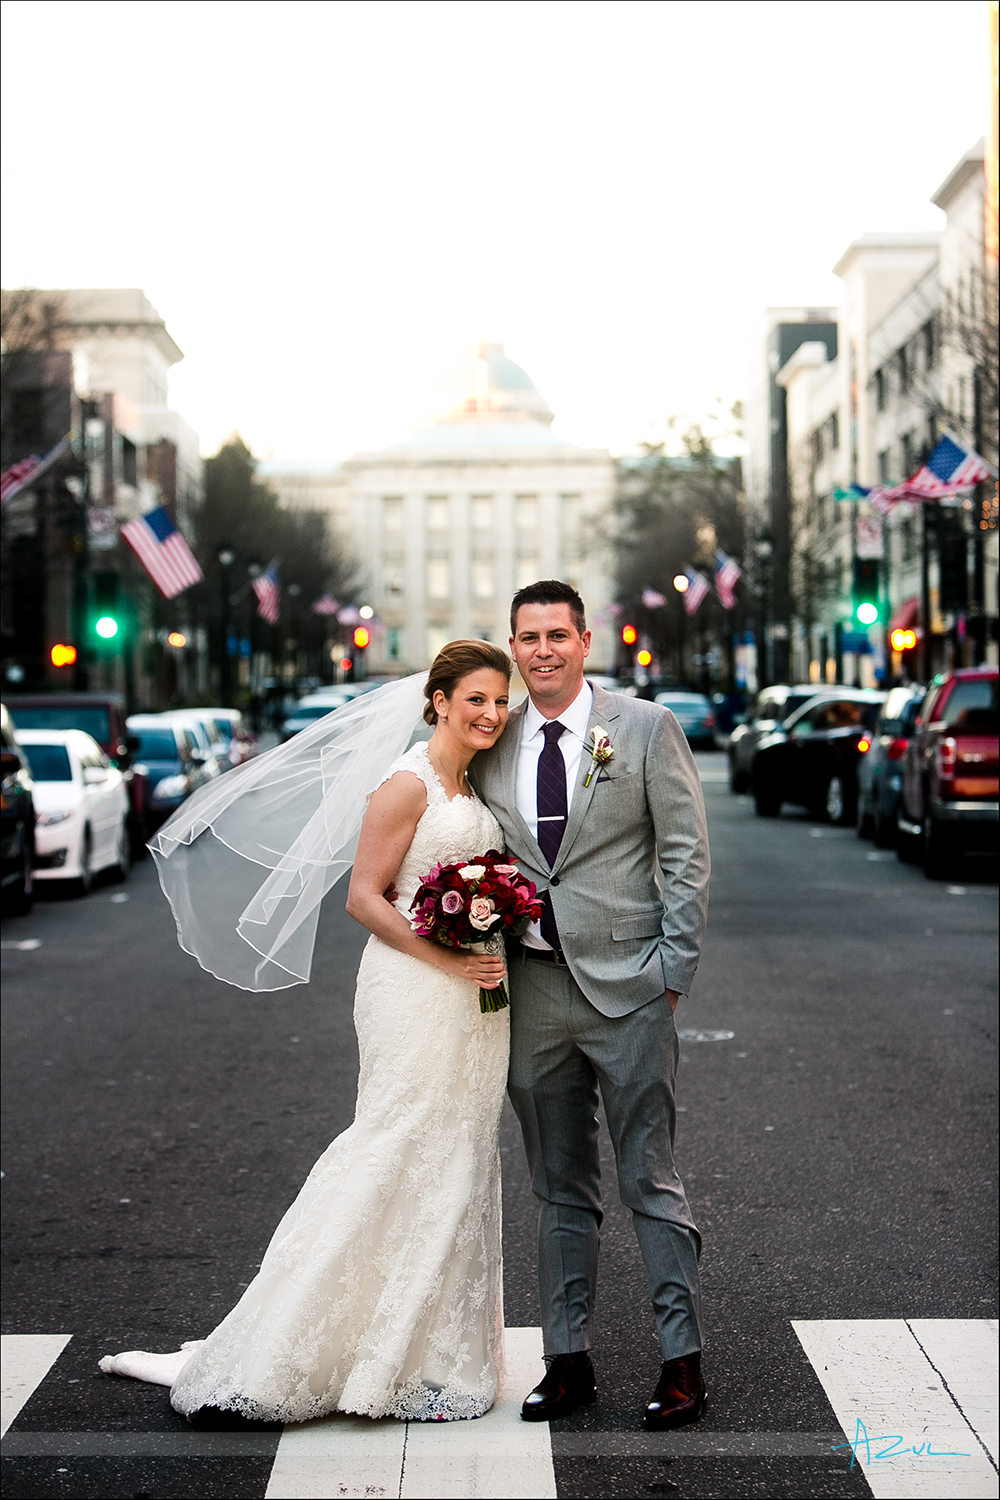 Wedding day B&G portrait photography on Fayetteville St in Raleigh, NC